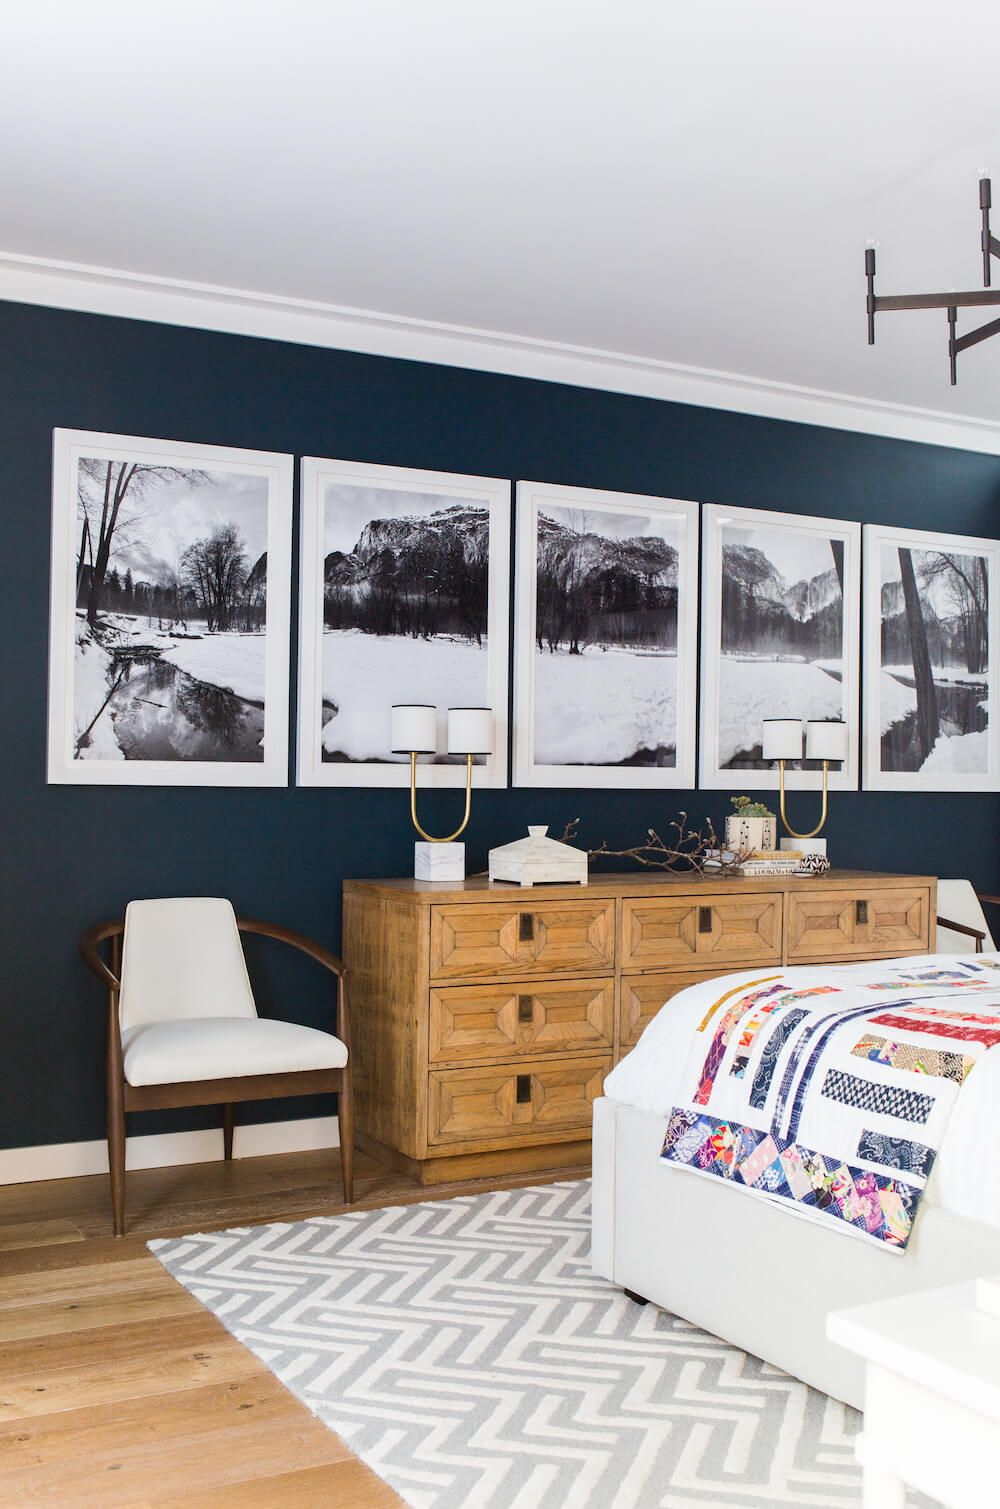 Vanity Bedroom Wall Art Of Long Of Black And White Photos